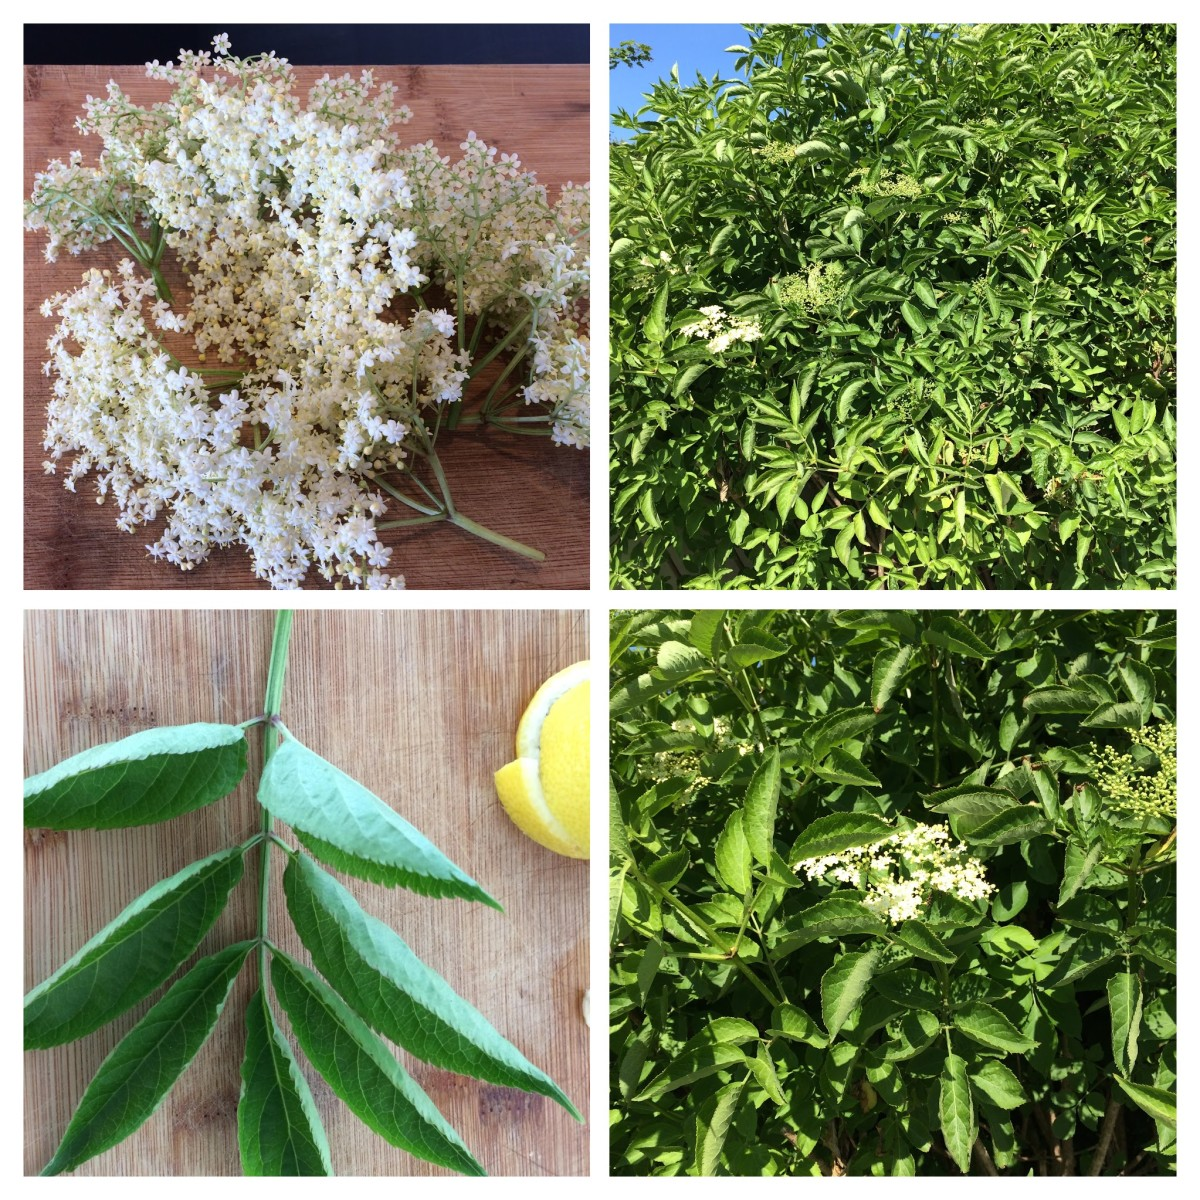 Identifying elderflowers. Top left, the sprays of flowers; bottom left, the leaf; right, the shrubby tree in a hedgerow.